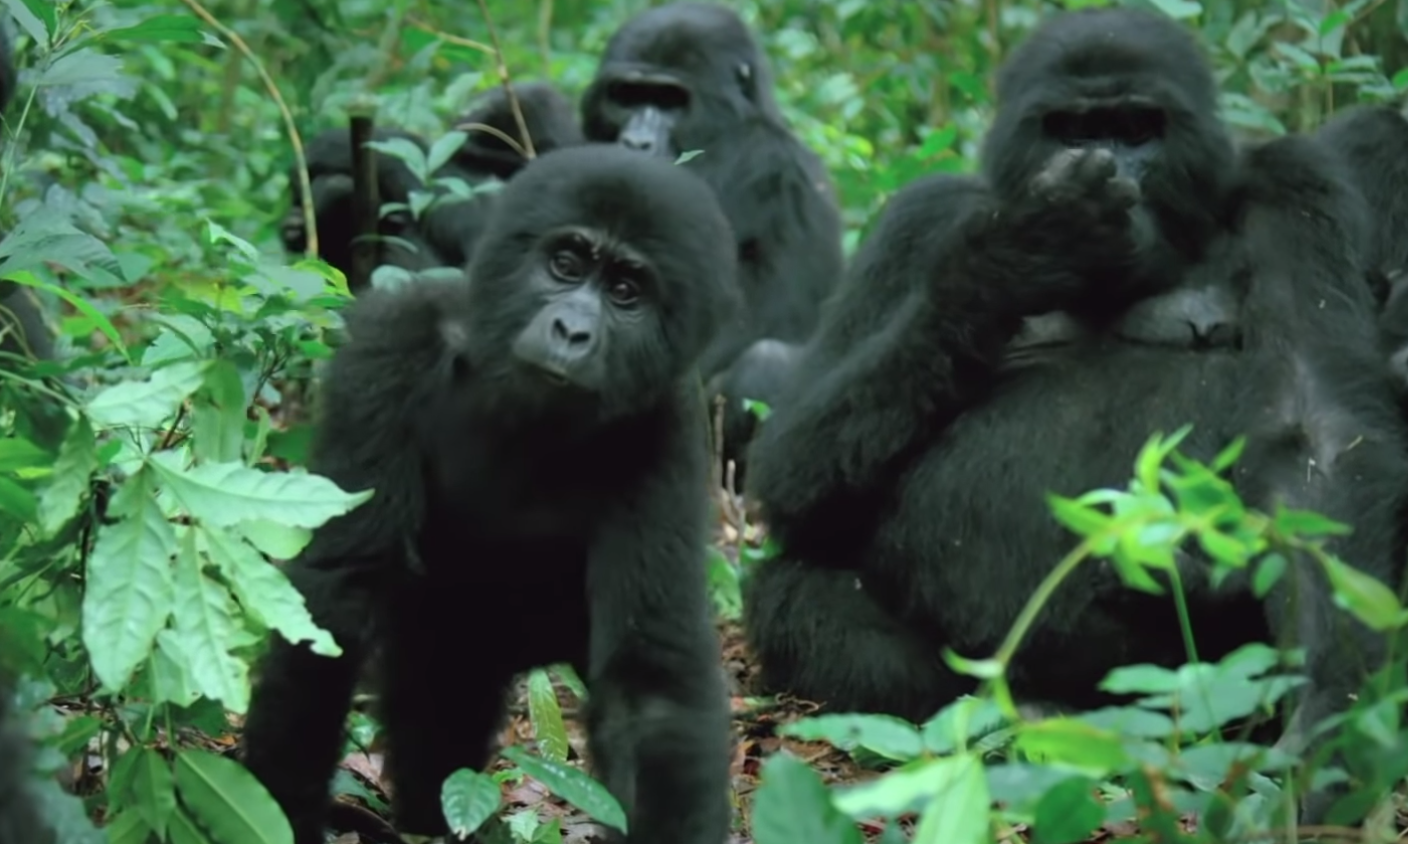 This Video Of A Baby Gorilla Robot Trying To Be Accepted By A Real Alpha Gorilla Has Us Nervously Holding Our Breaths